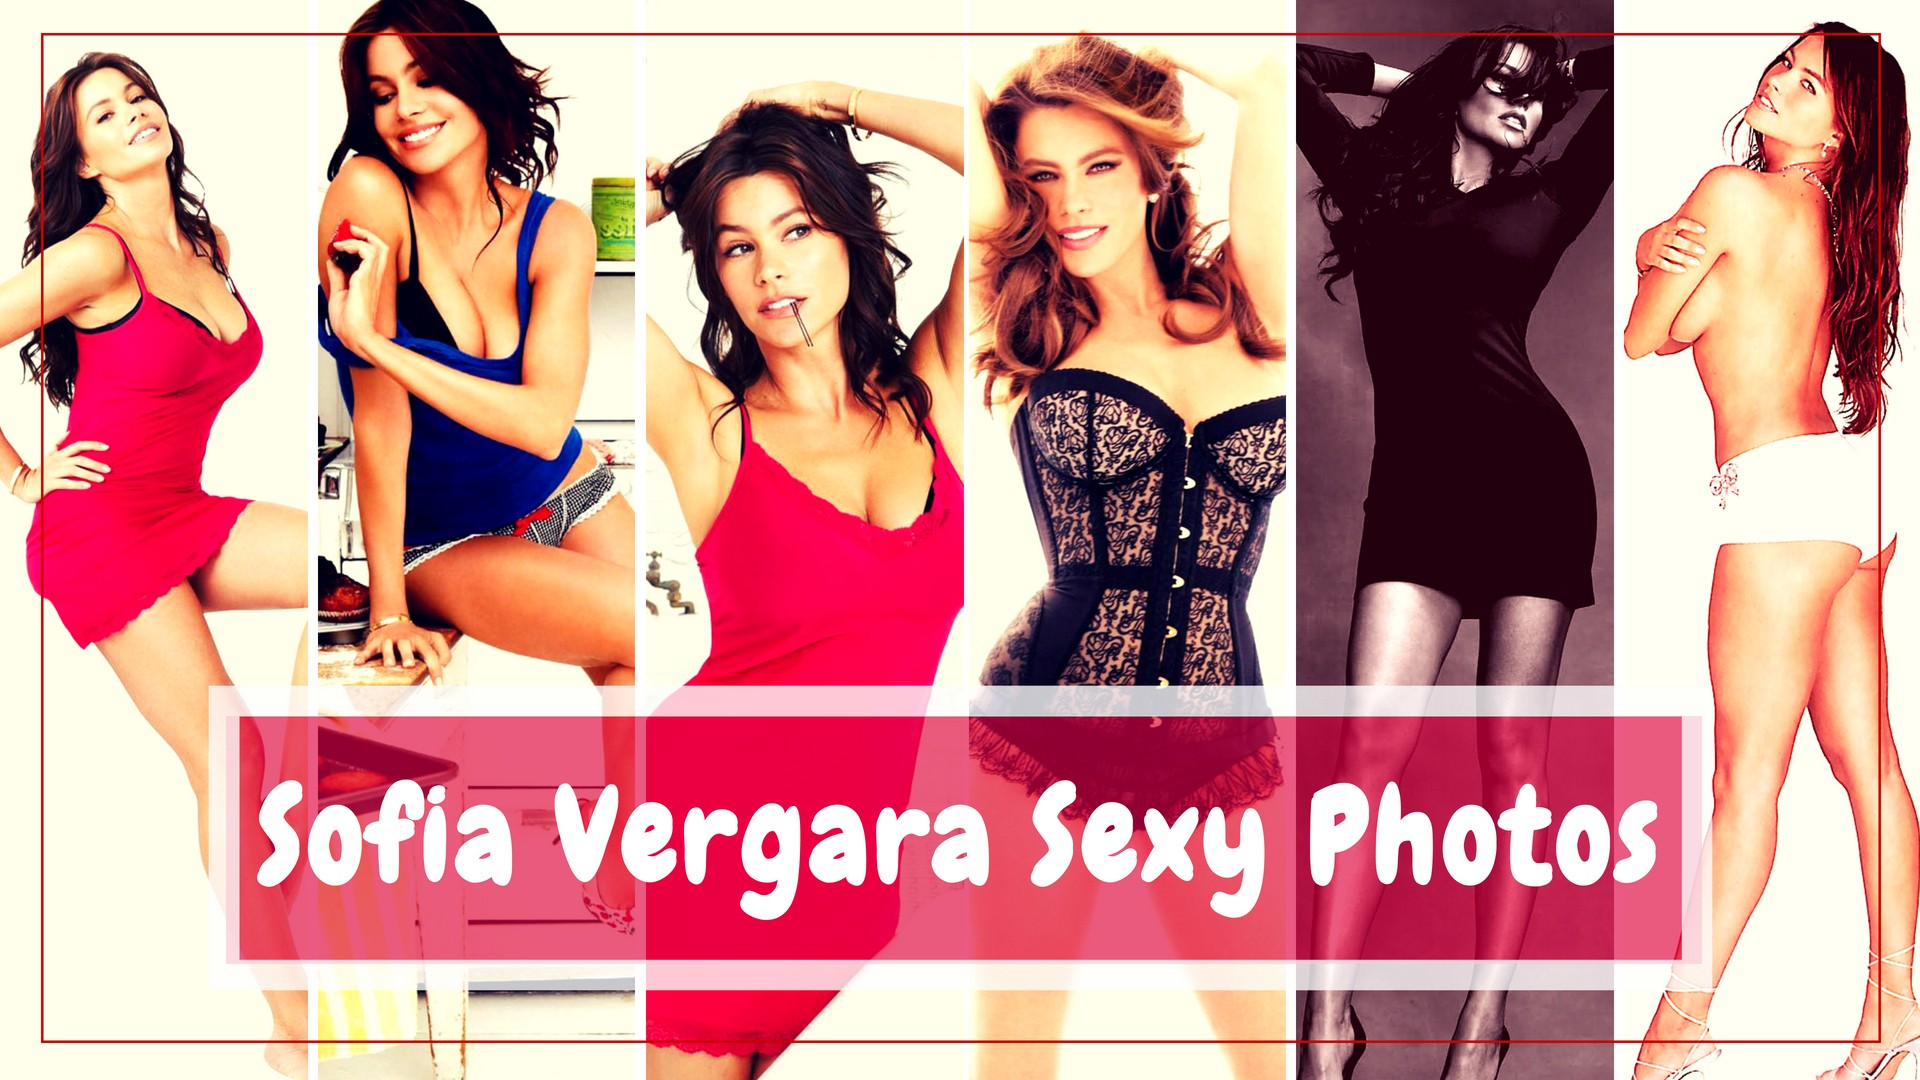 Sexy Sofia Vergara Photos Collection - Sexy Actress Pictures | Hot Actress Pictures - ActressSnaps.com